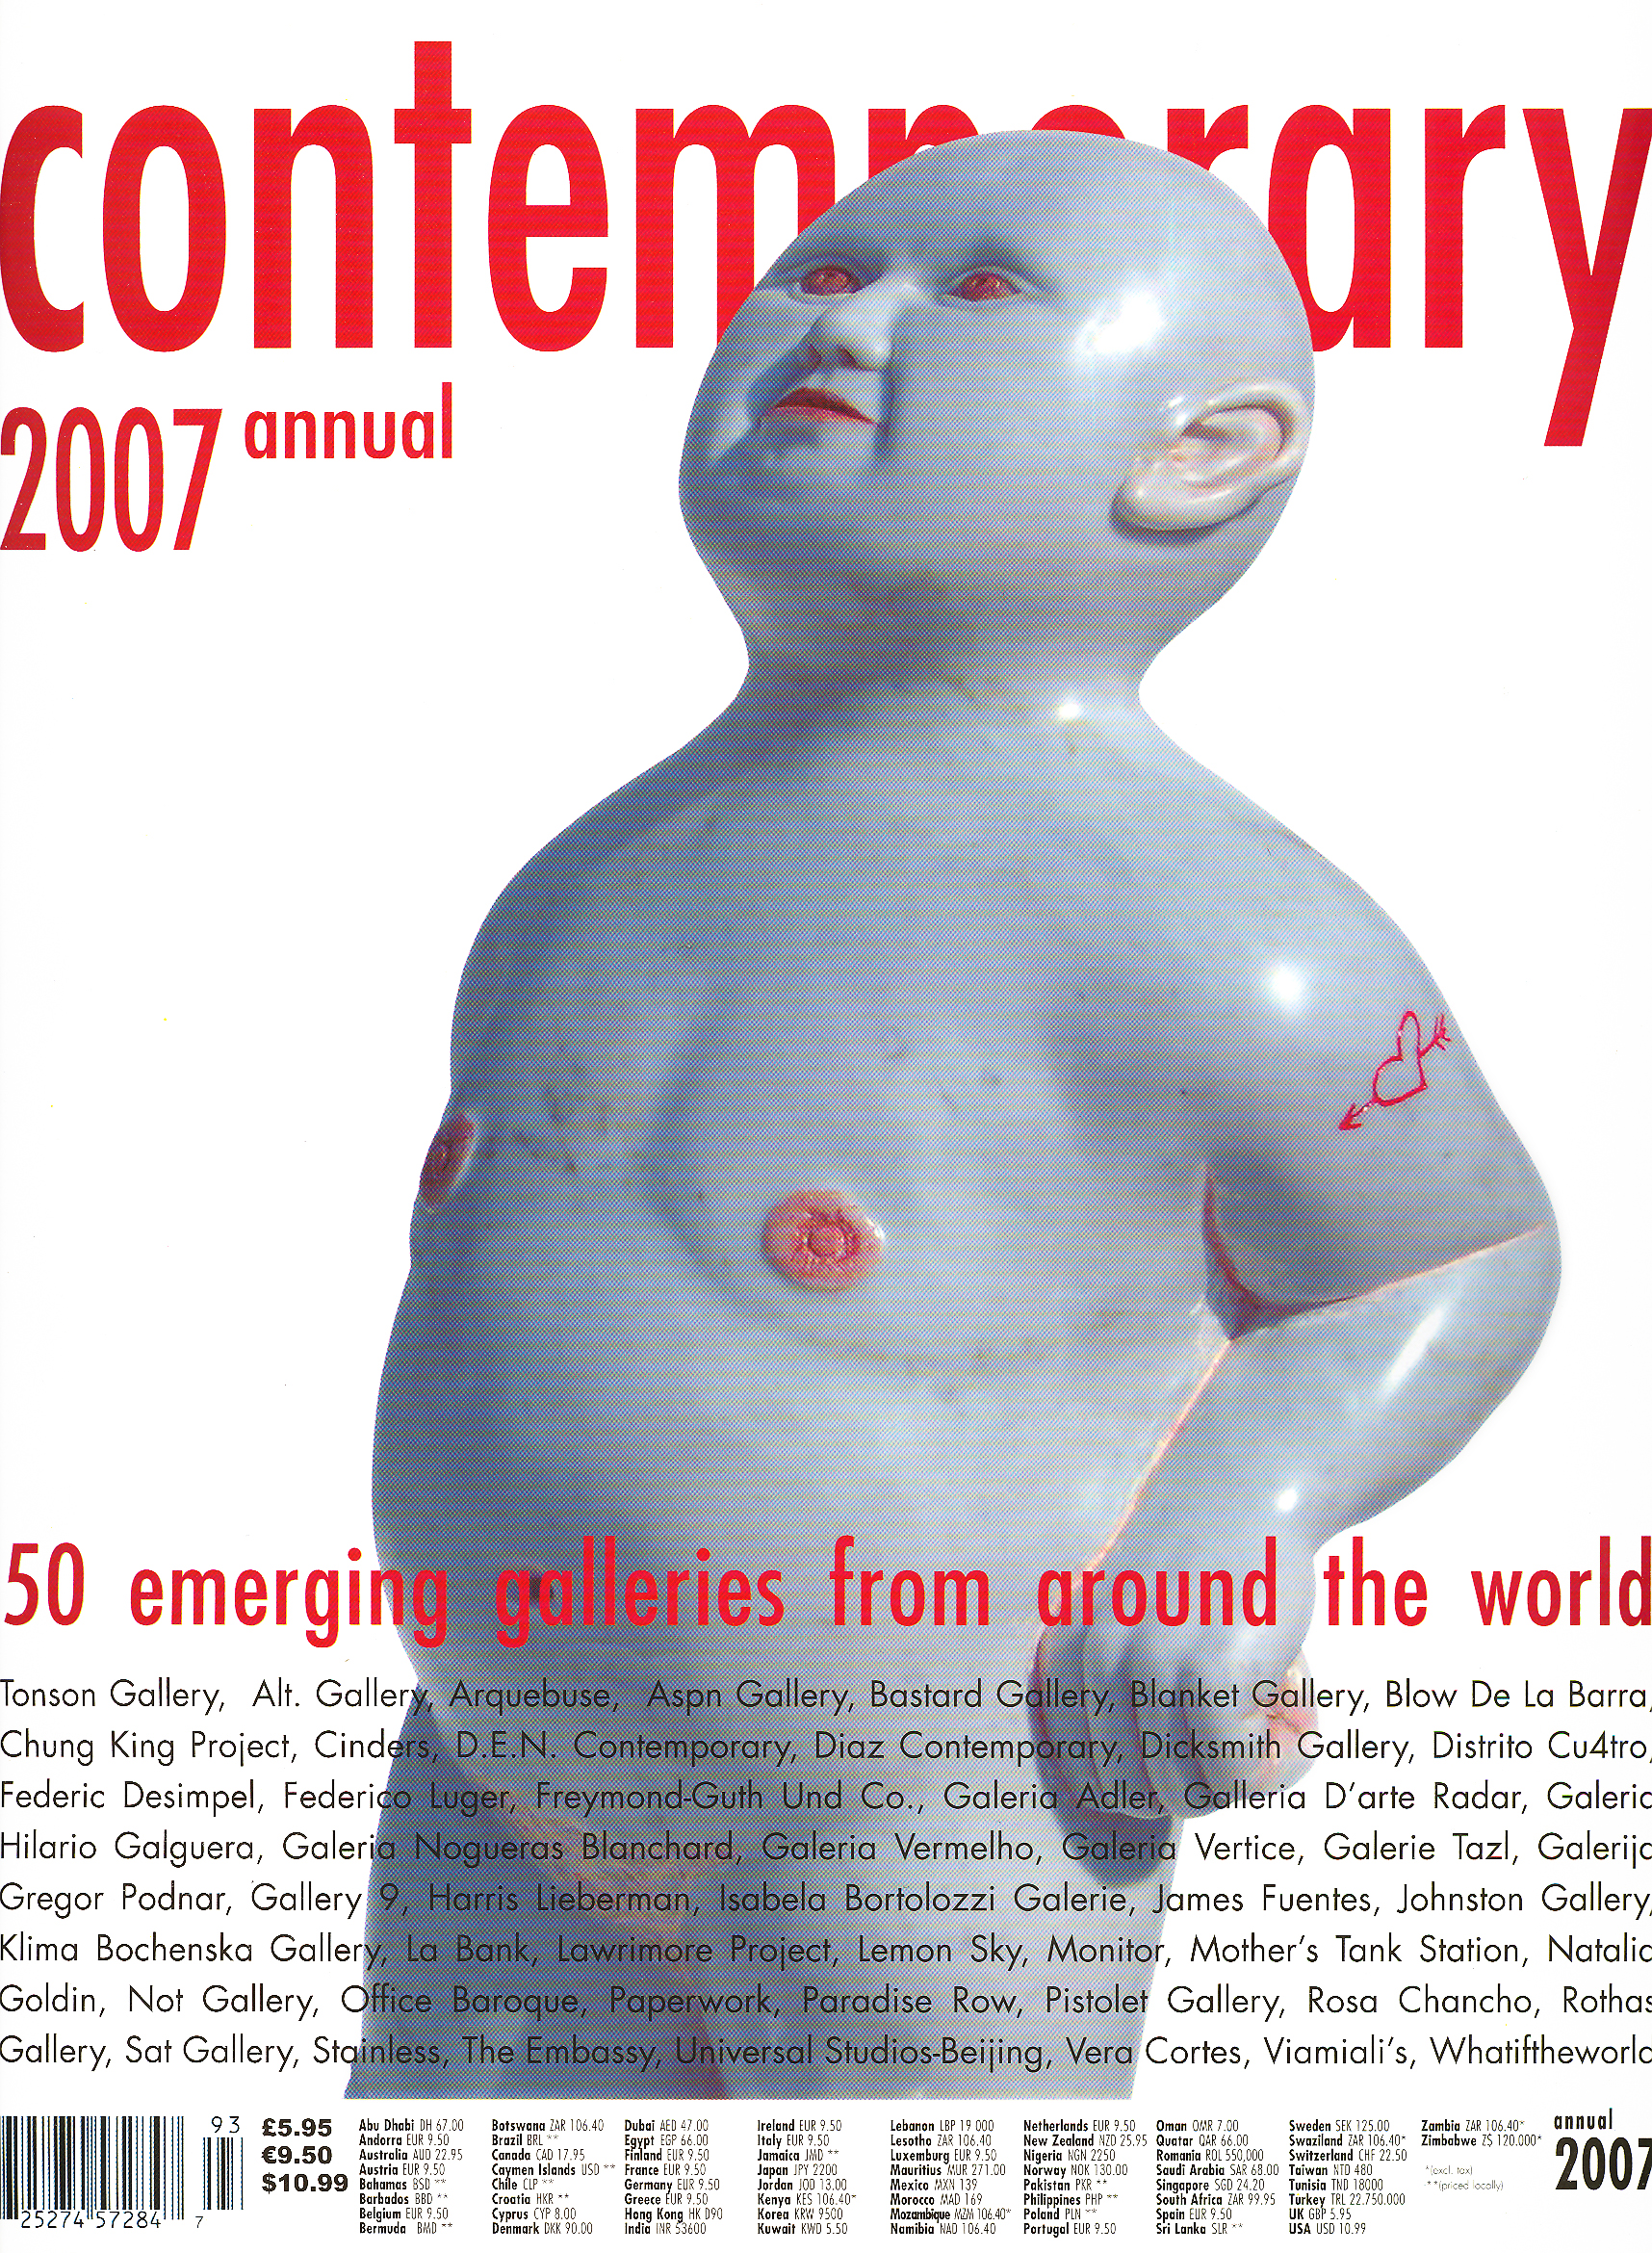 07 Contemporary-cover.jpg